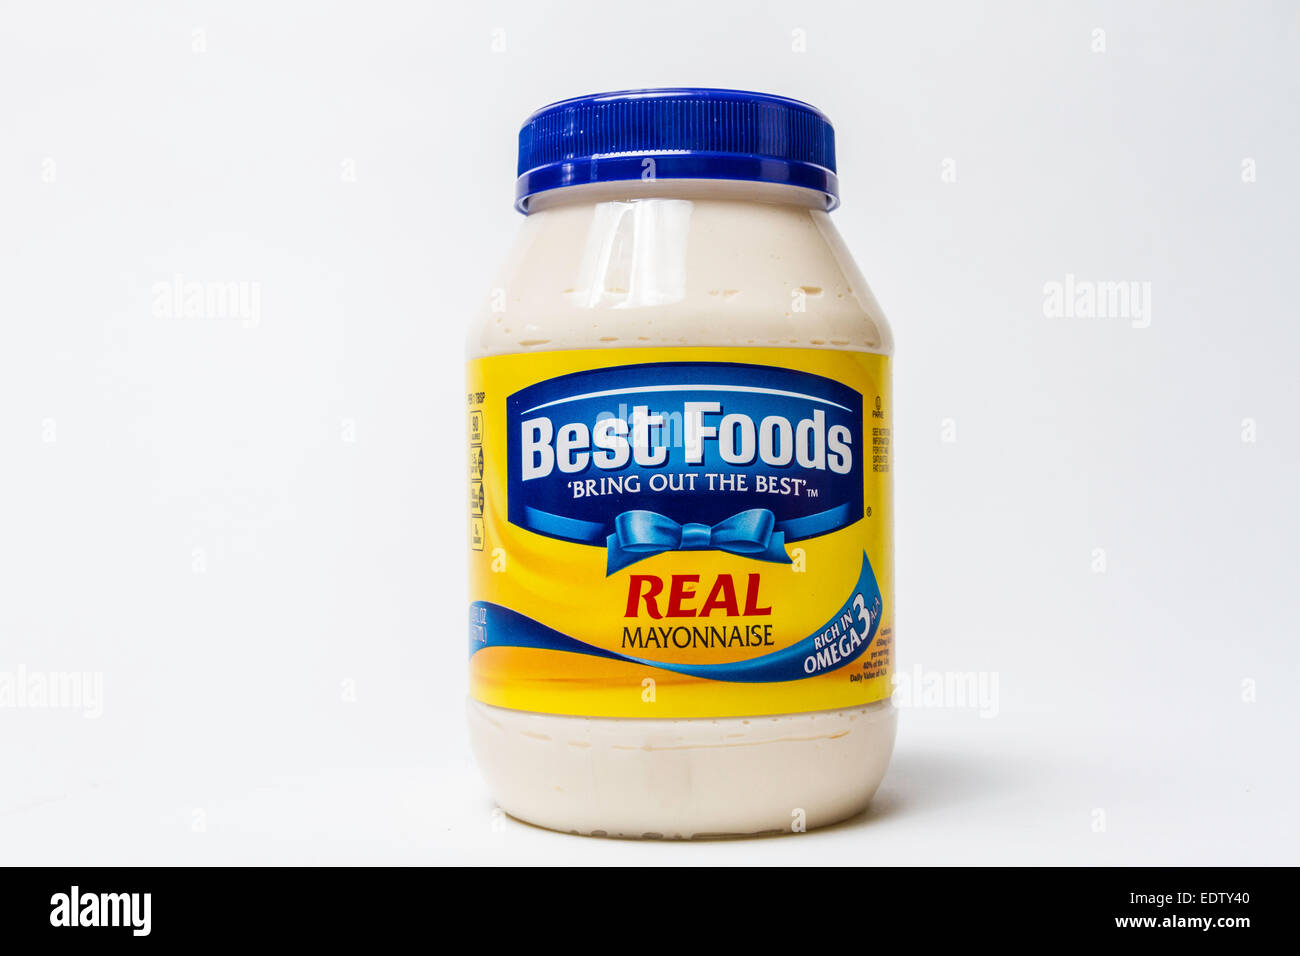 Best Foods Mayonnaise jar - Stock Image